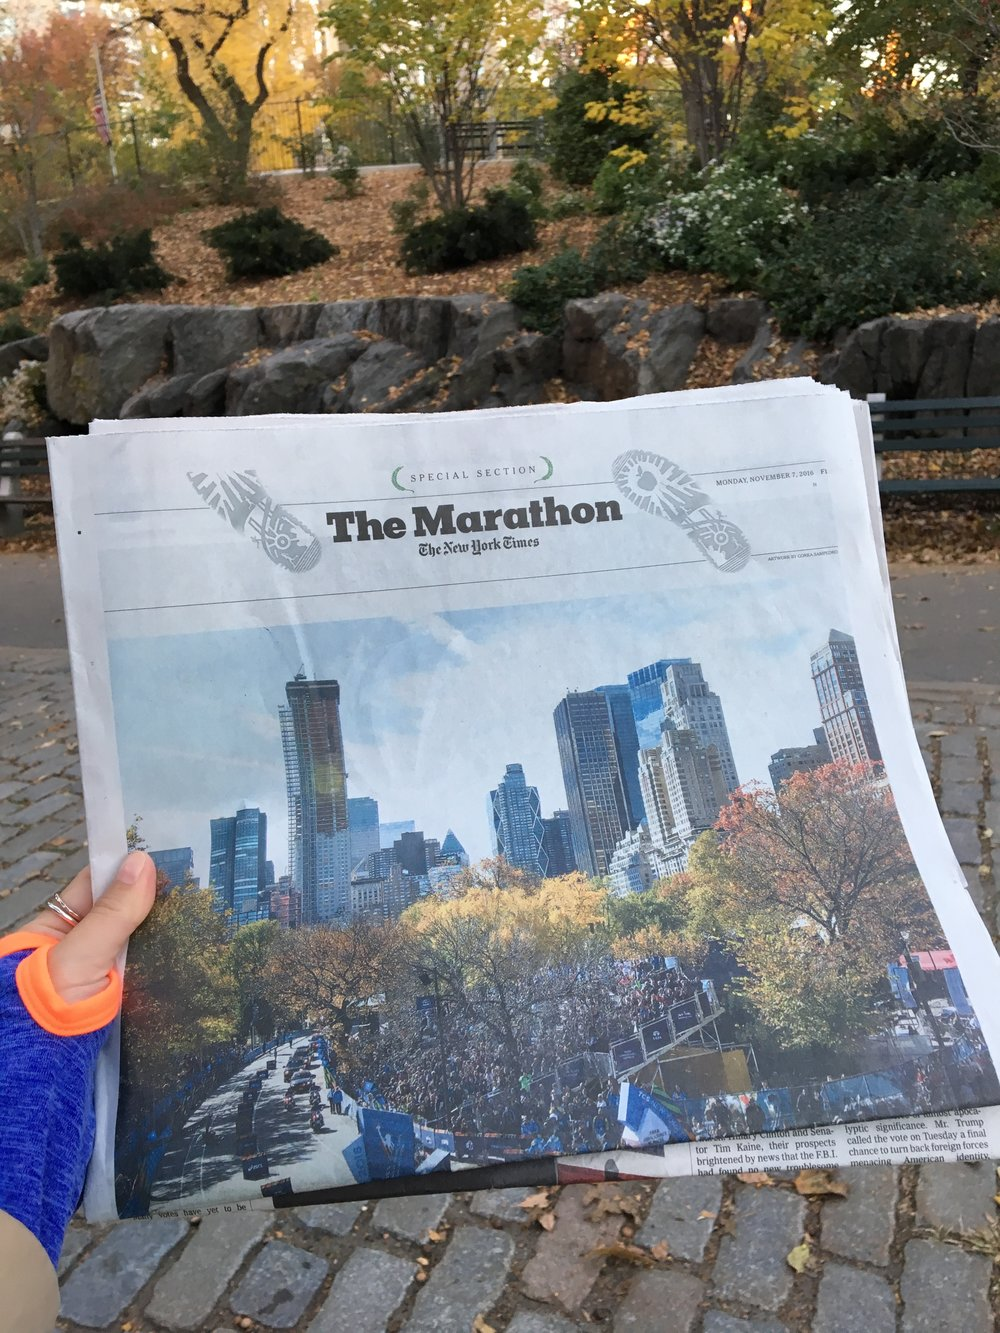 Reading The Marathon section of the New York Times in Central Park the day after the race.